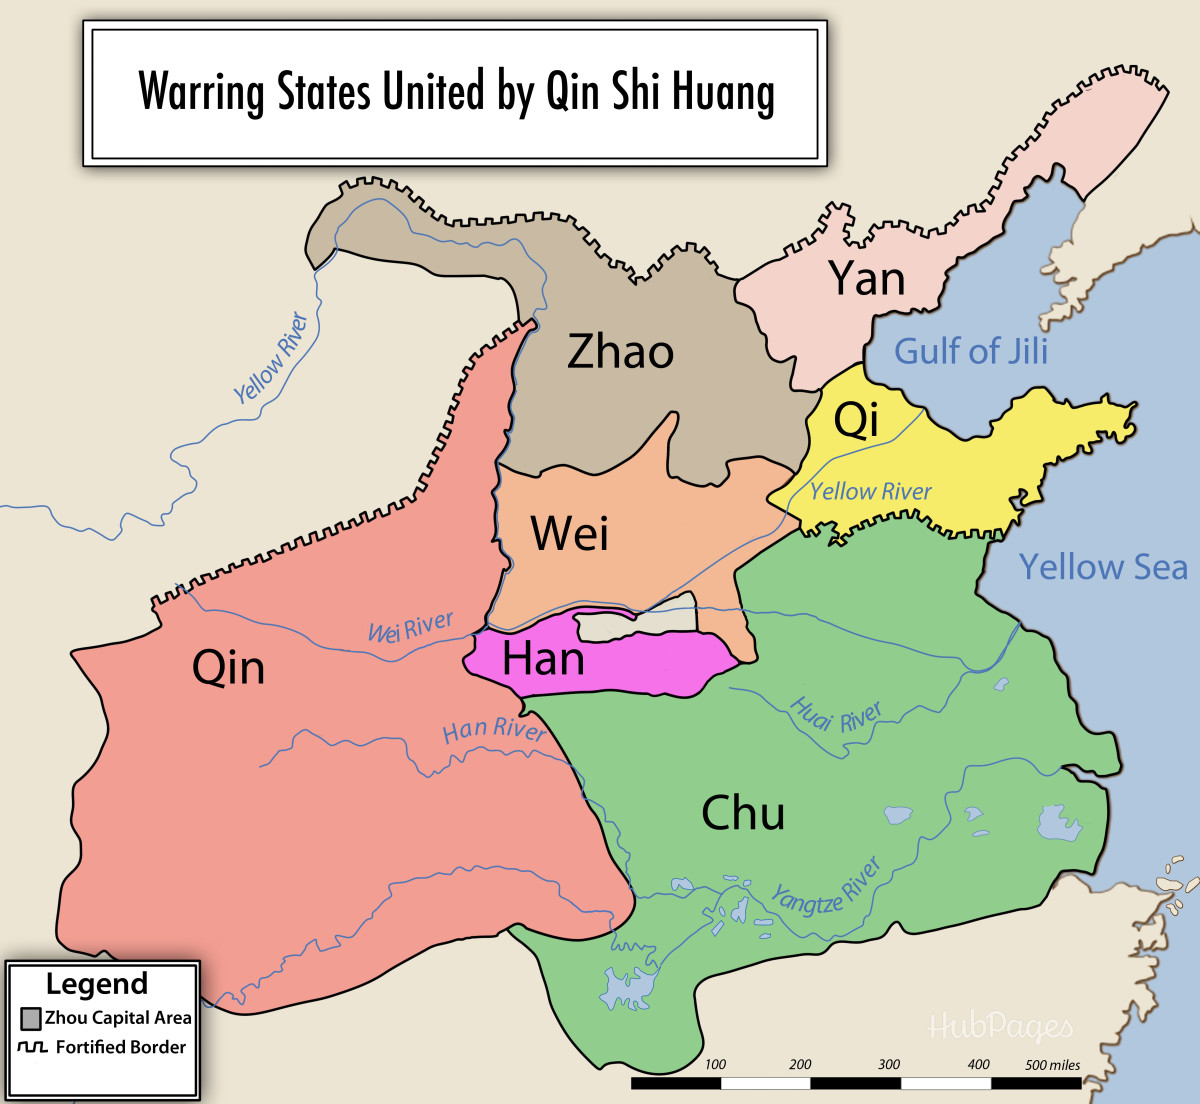 Qin Shihuan conquered all of the states in China, ending the Warring States period.